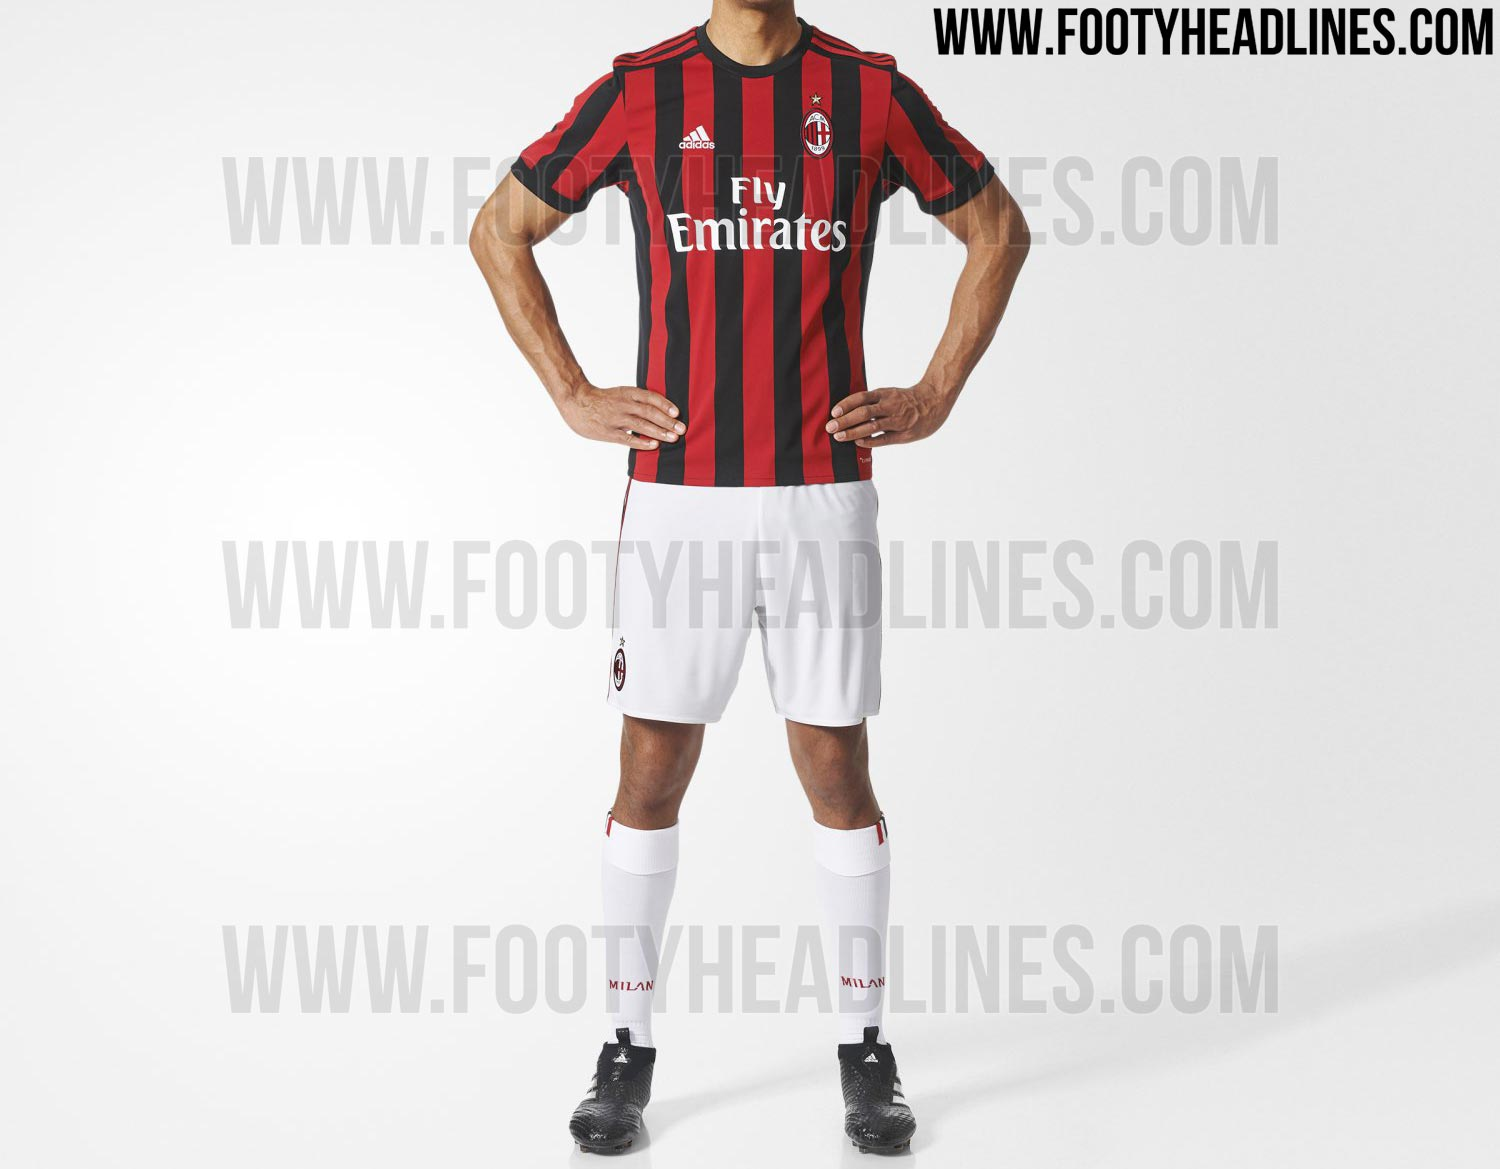 Ac milan 17 18 home kit released footy headlines for Cuarto kit del america